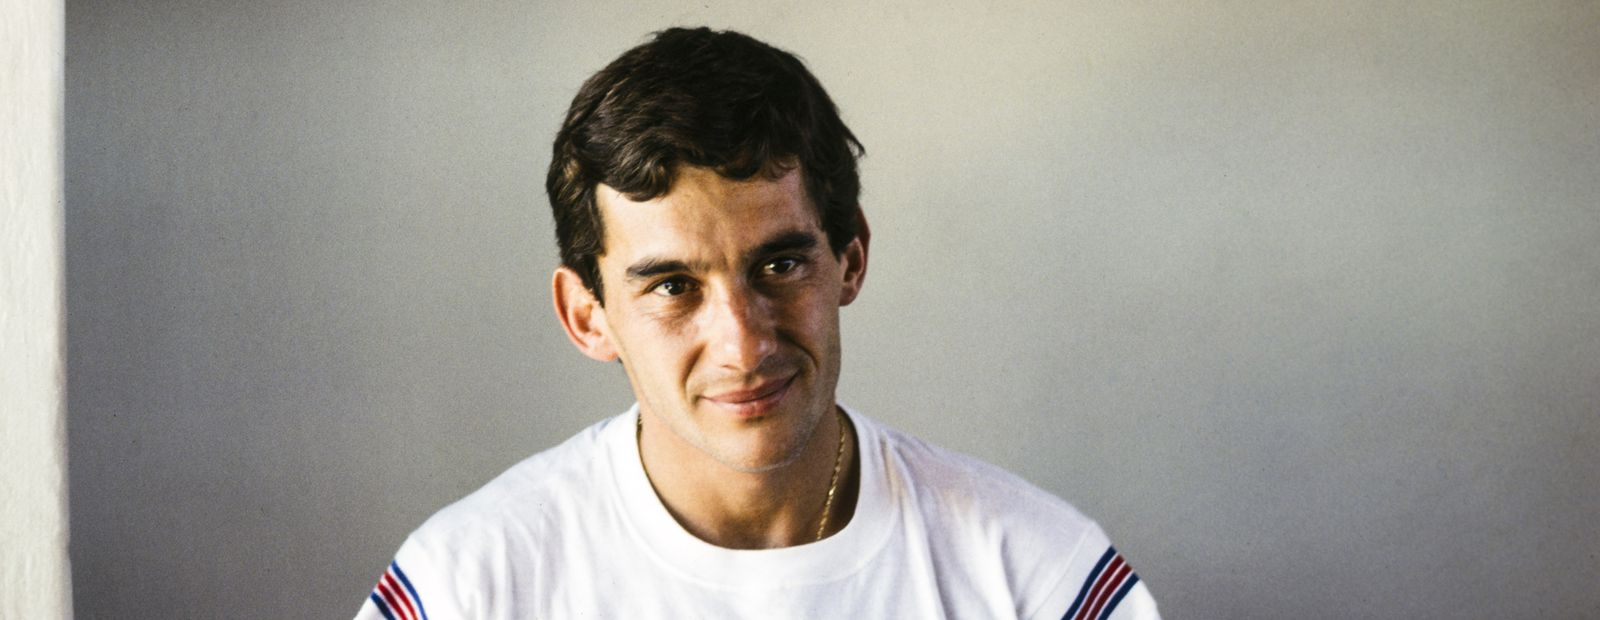 5 life lessons from Ayrton Senna